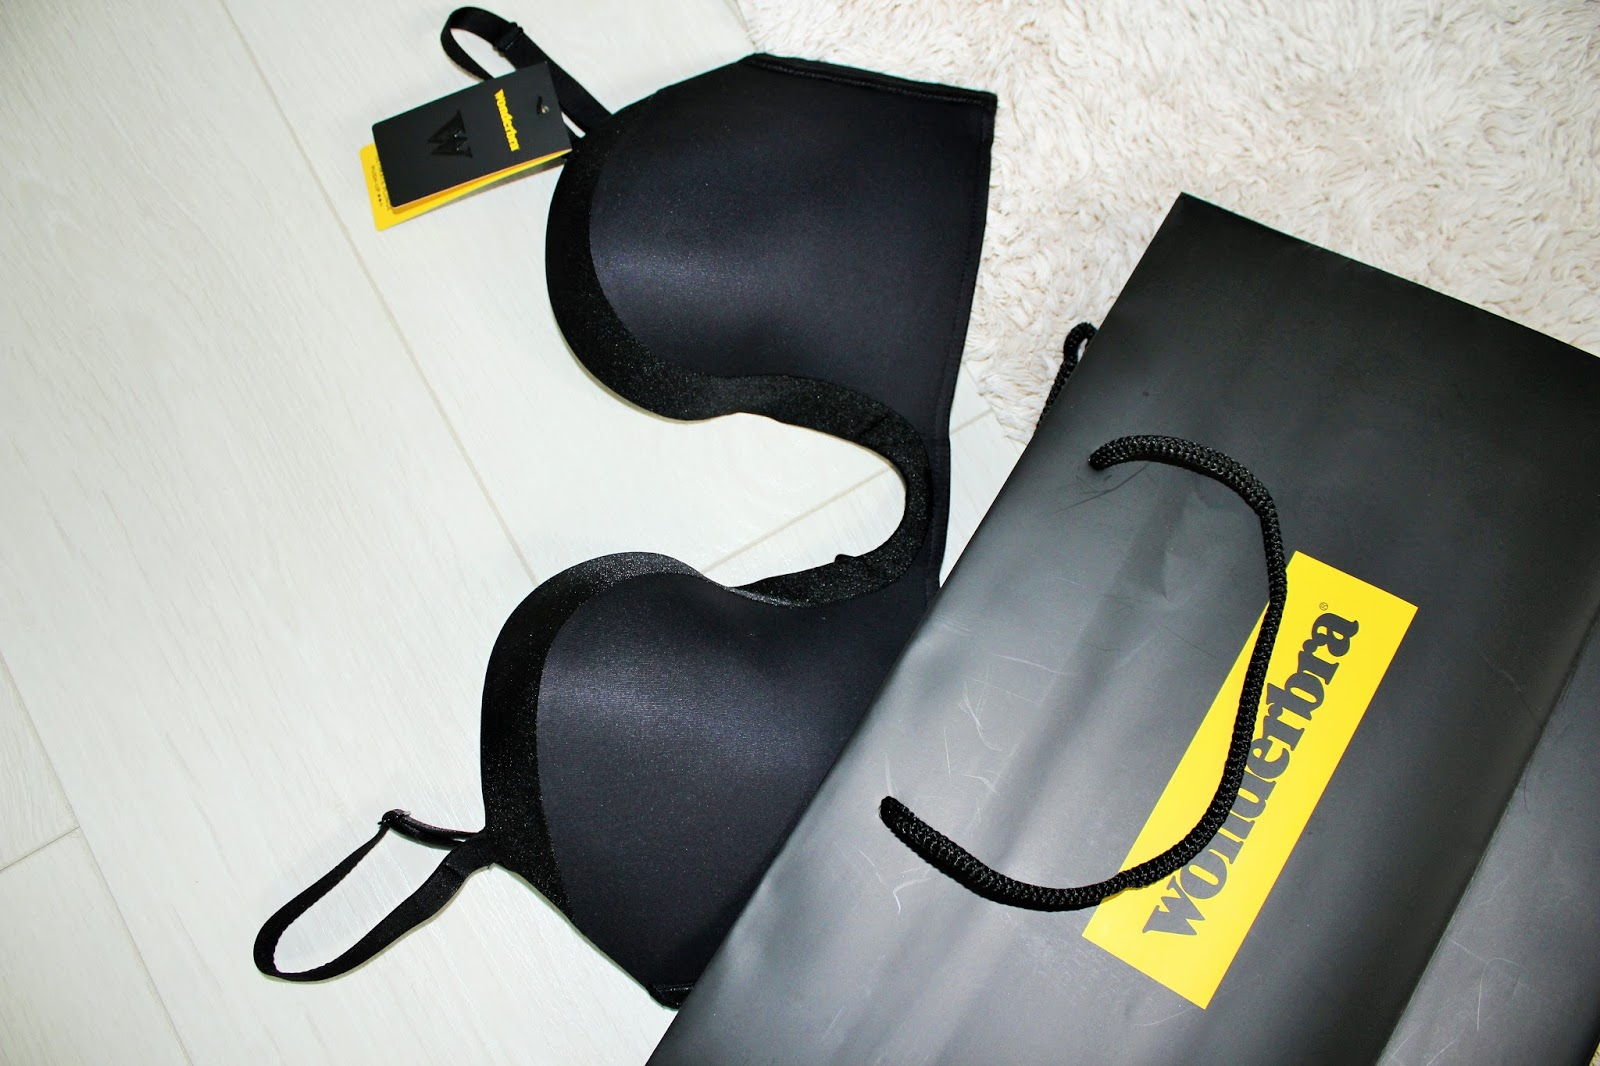 Lingerie Giveaway with Debenhams - Win a Wonderbra 1